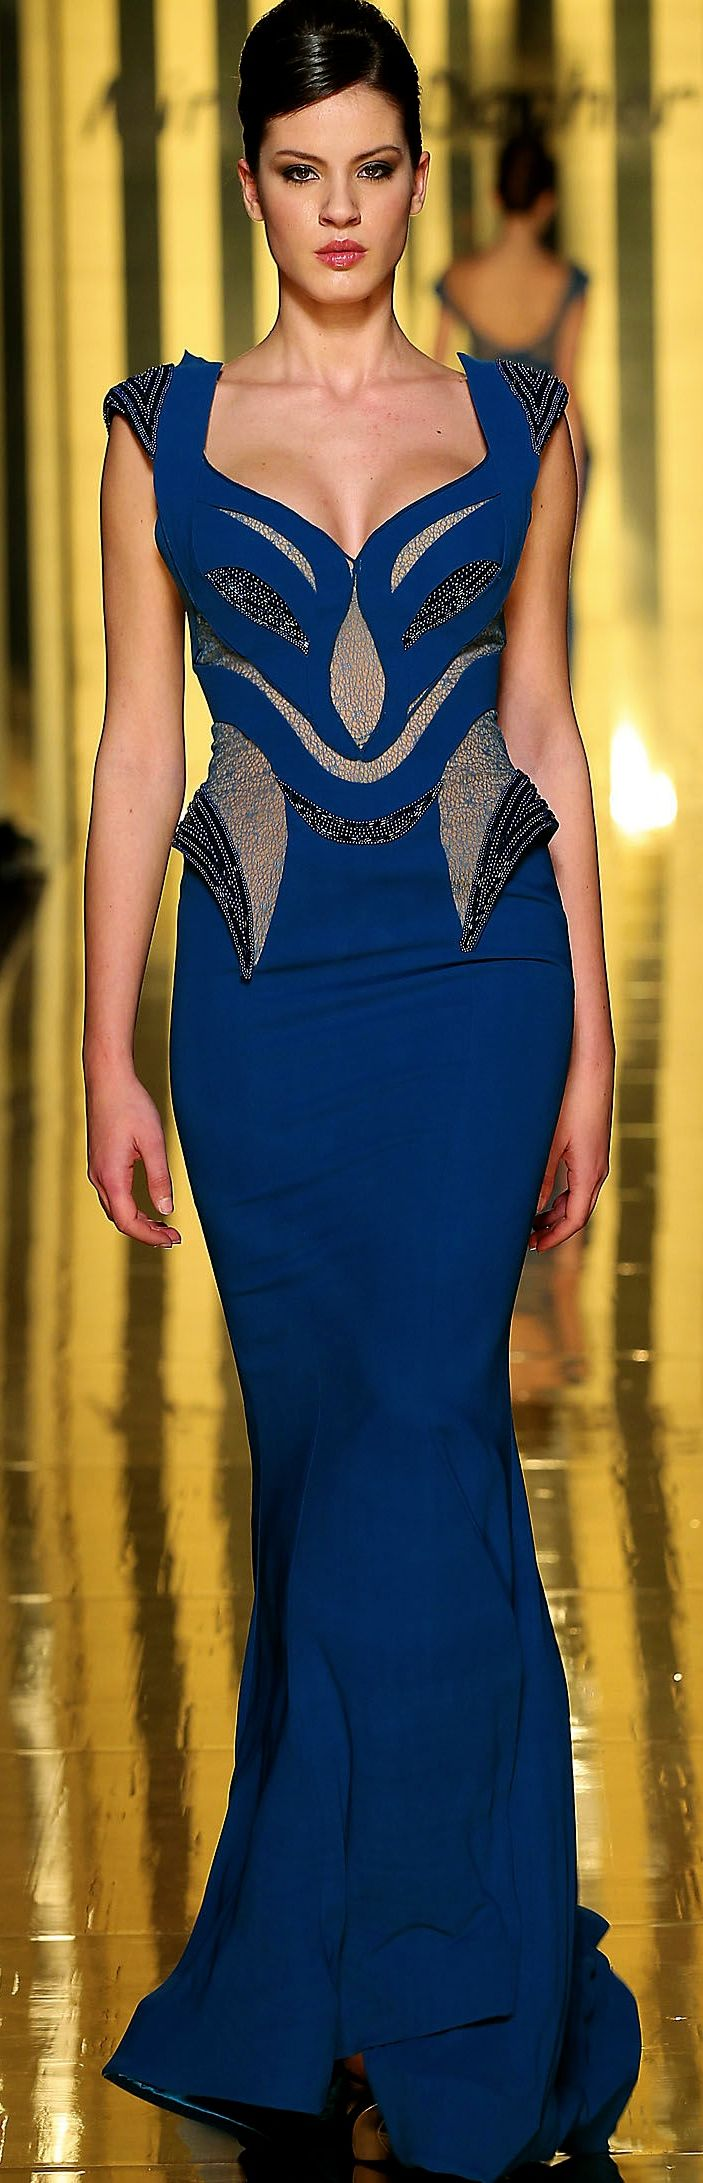 Mireille Dagher Couture SS 2013 DanceSport gown idea